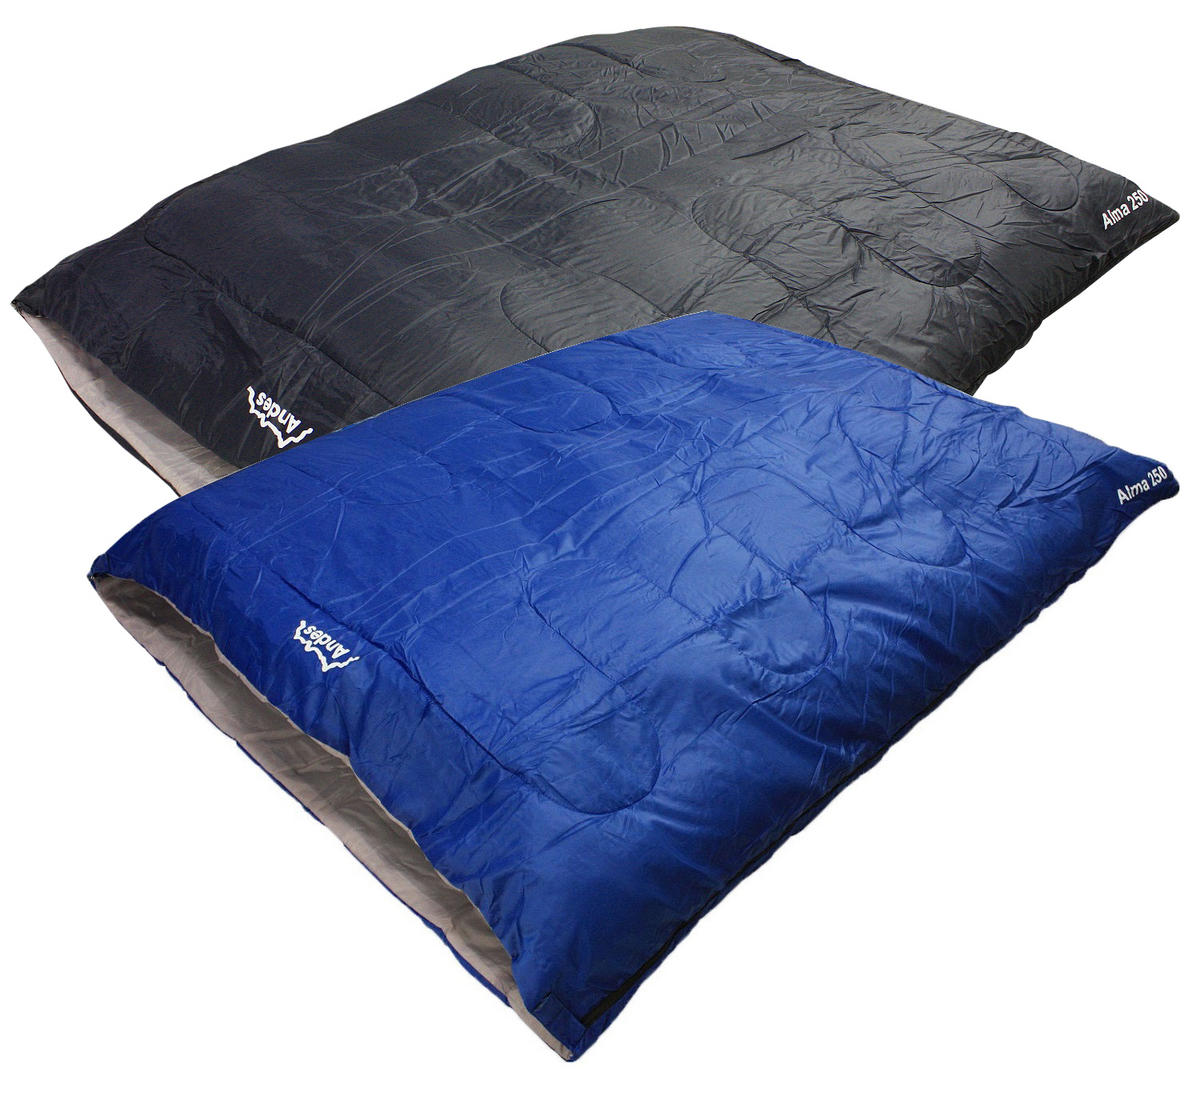 Andes Alma 250 Double Sleeping Bag